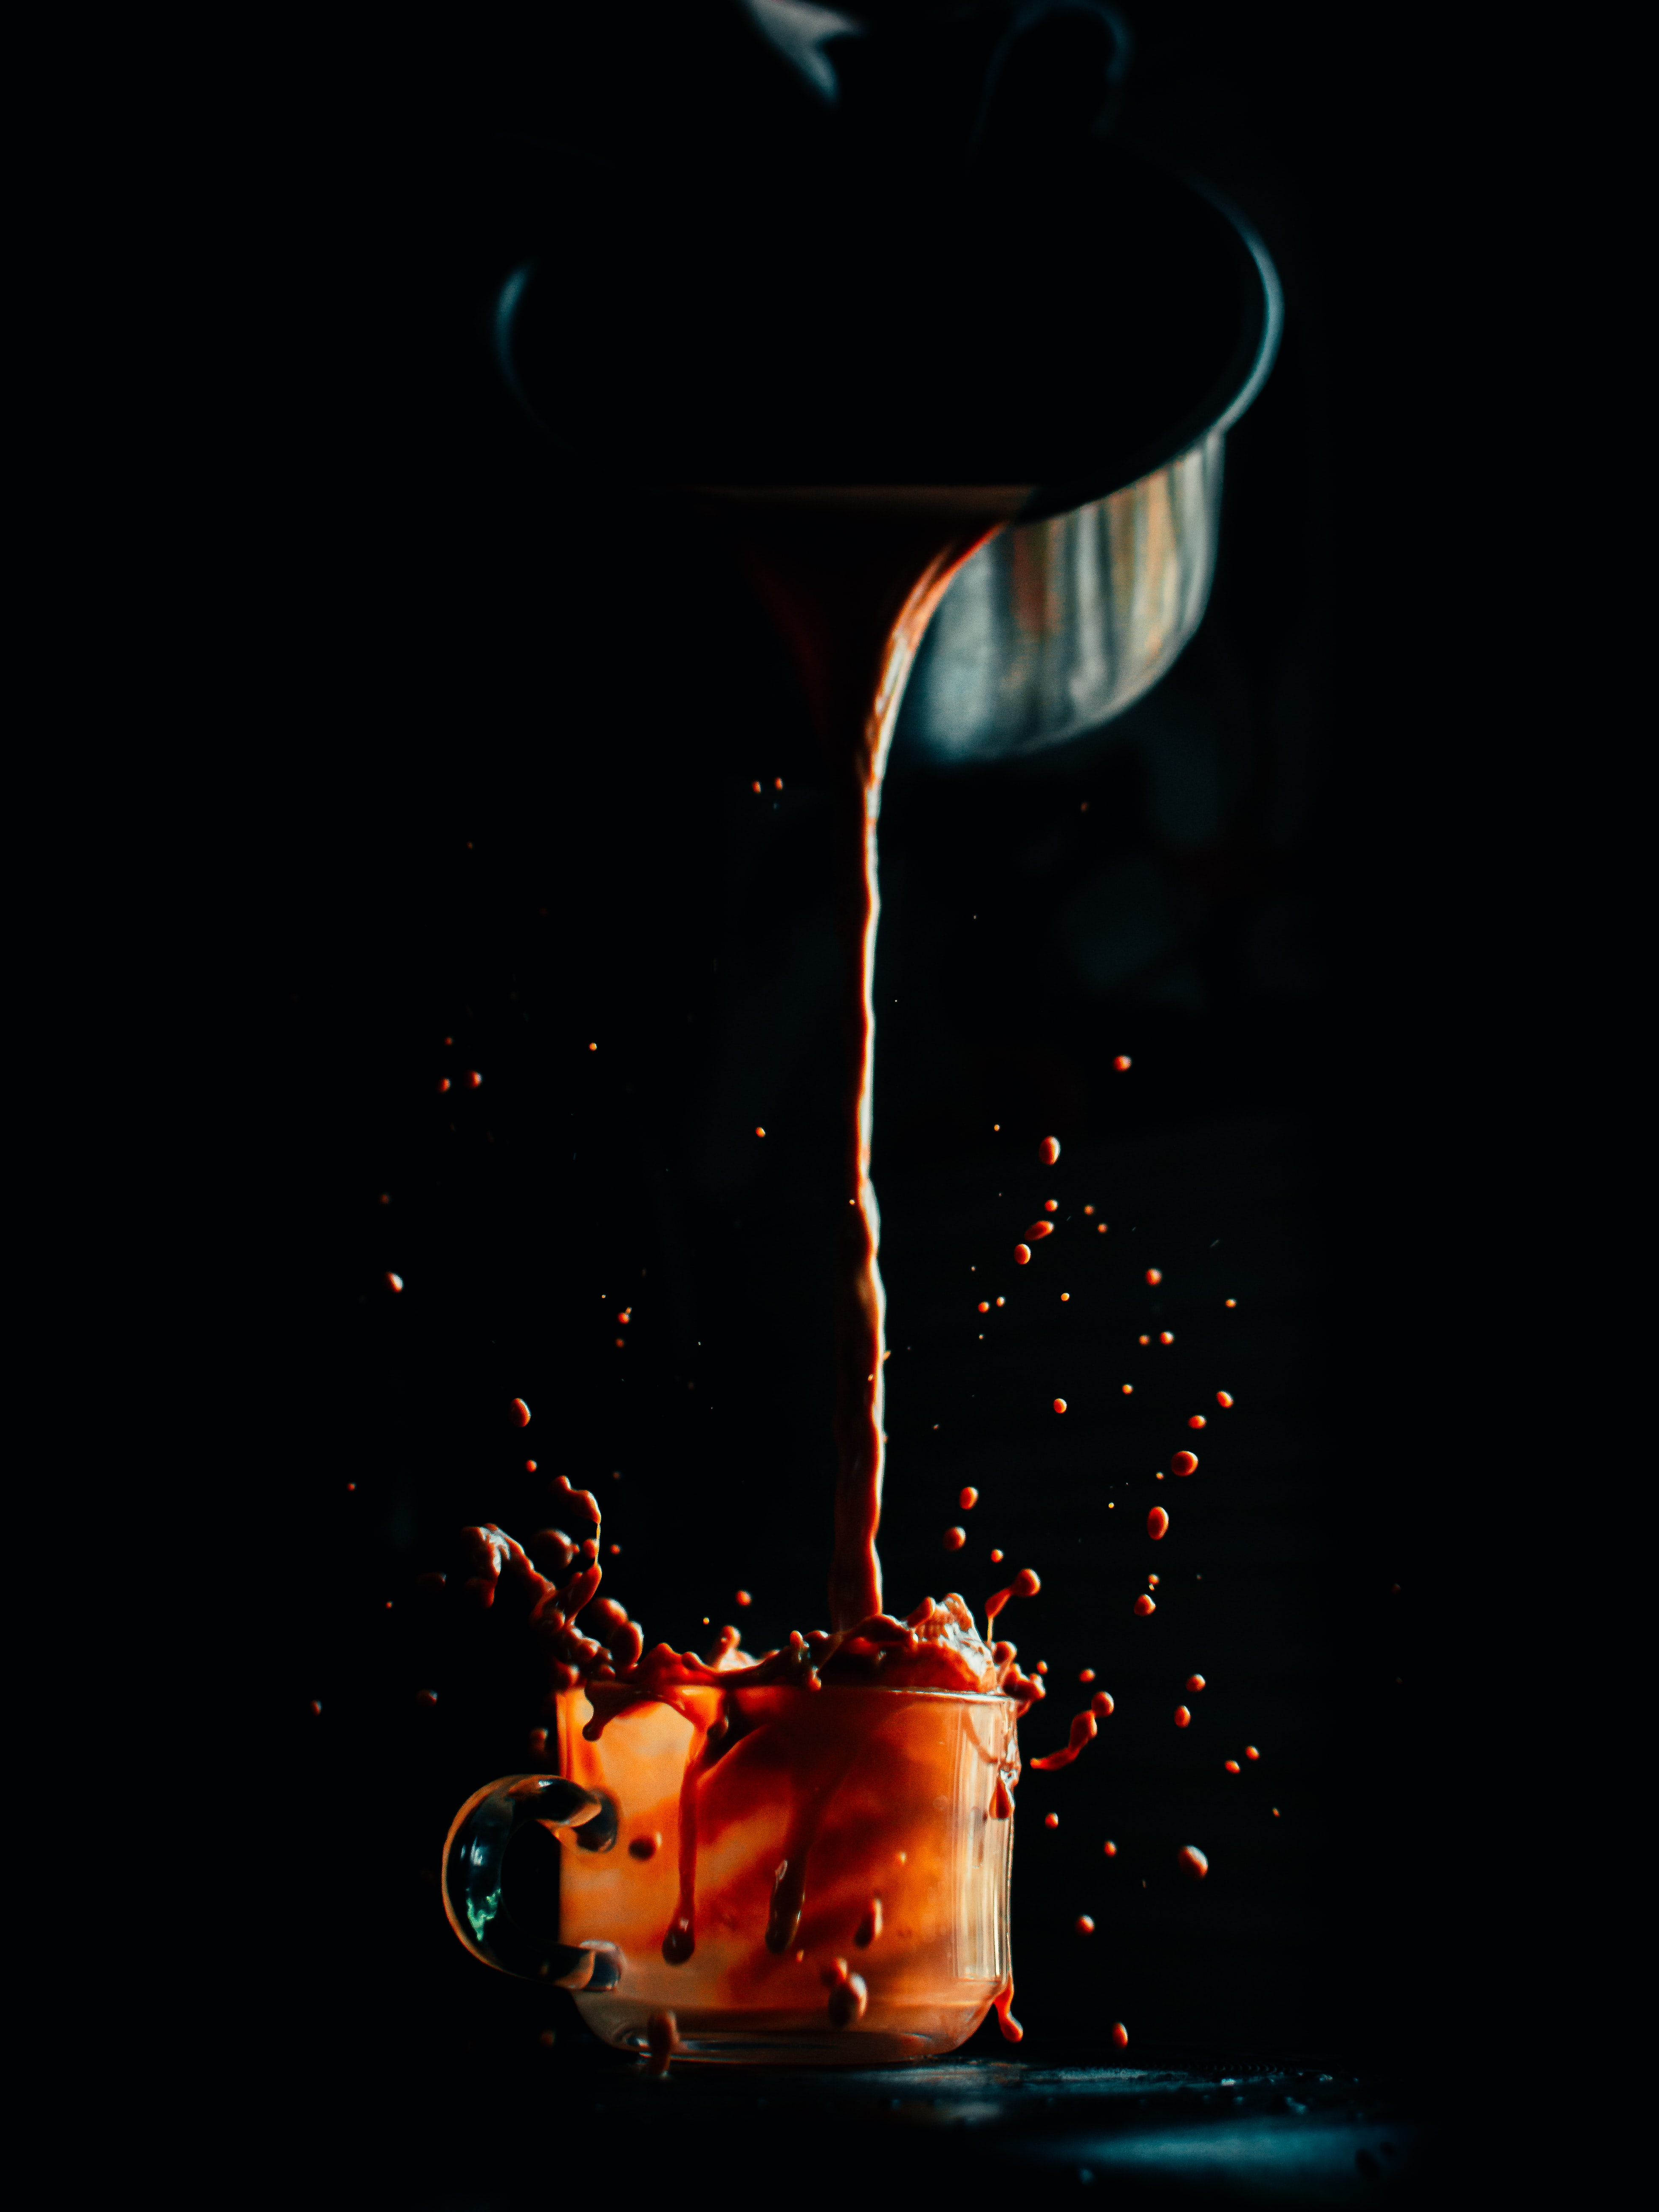 119085 download wallpaper Food, Cup, Coffee, Drink, Beverage, Spray, Dark screensavers and pictures for free